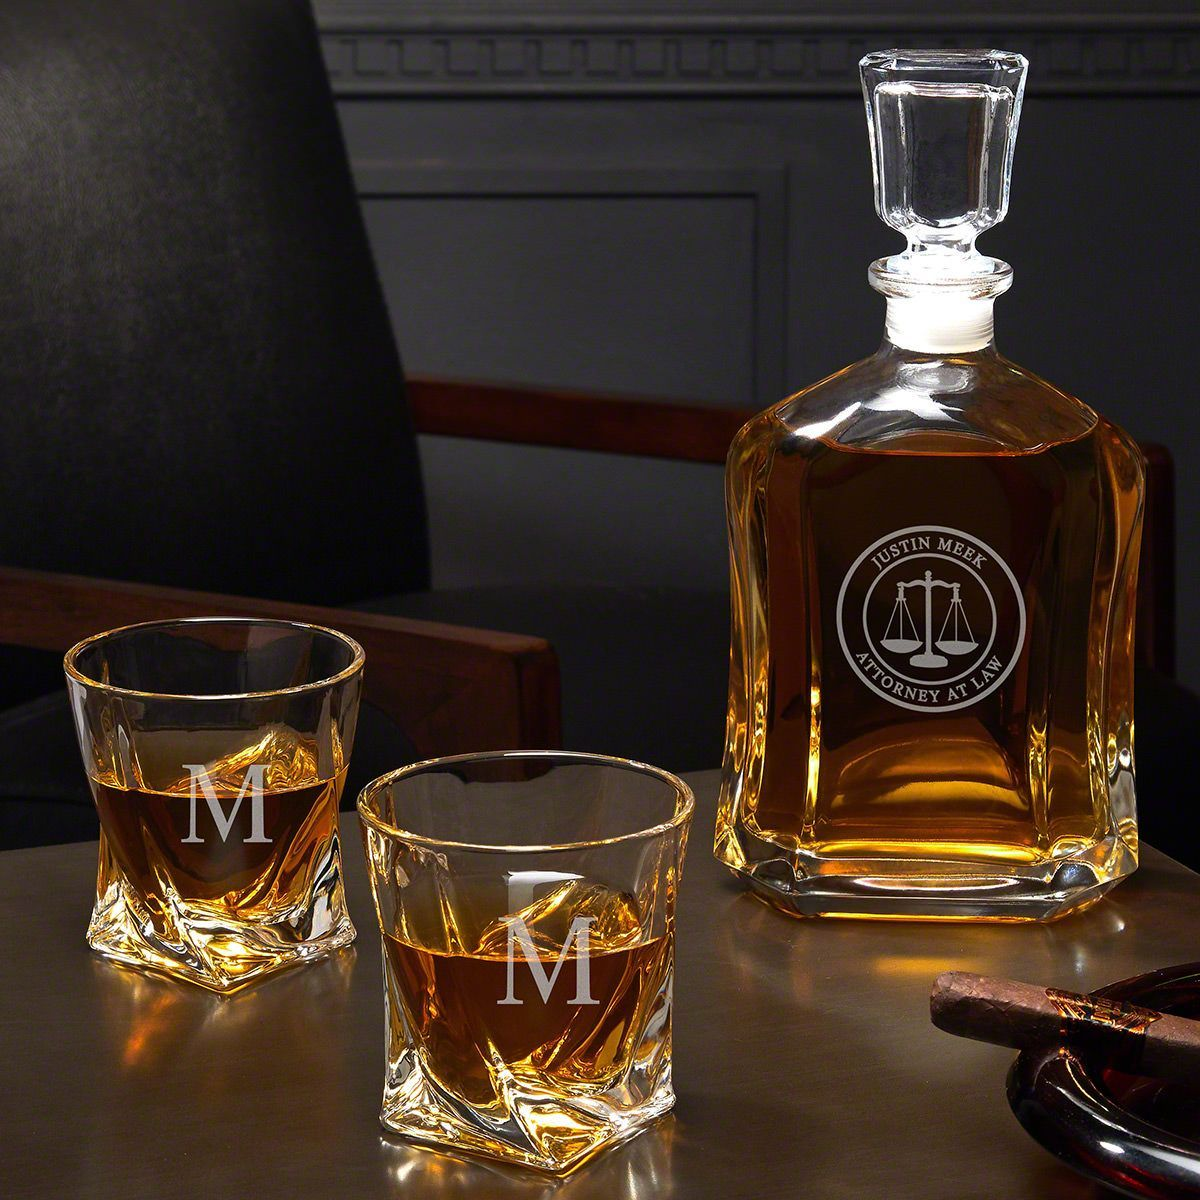 Scales Of Justice Custom Decanter Twist Glasses Gift For Lawyer Personalized Whiskey Decanter Whiskey Decanter Set Personalized Whiskey Decanter Set